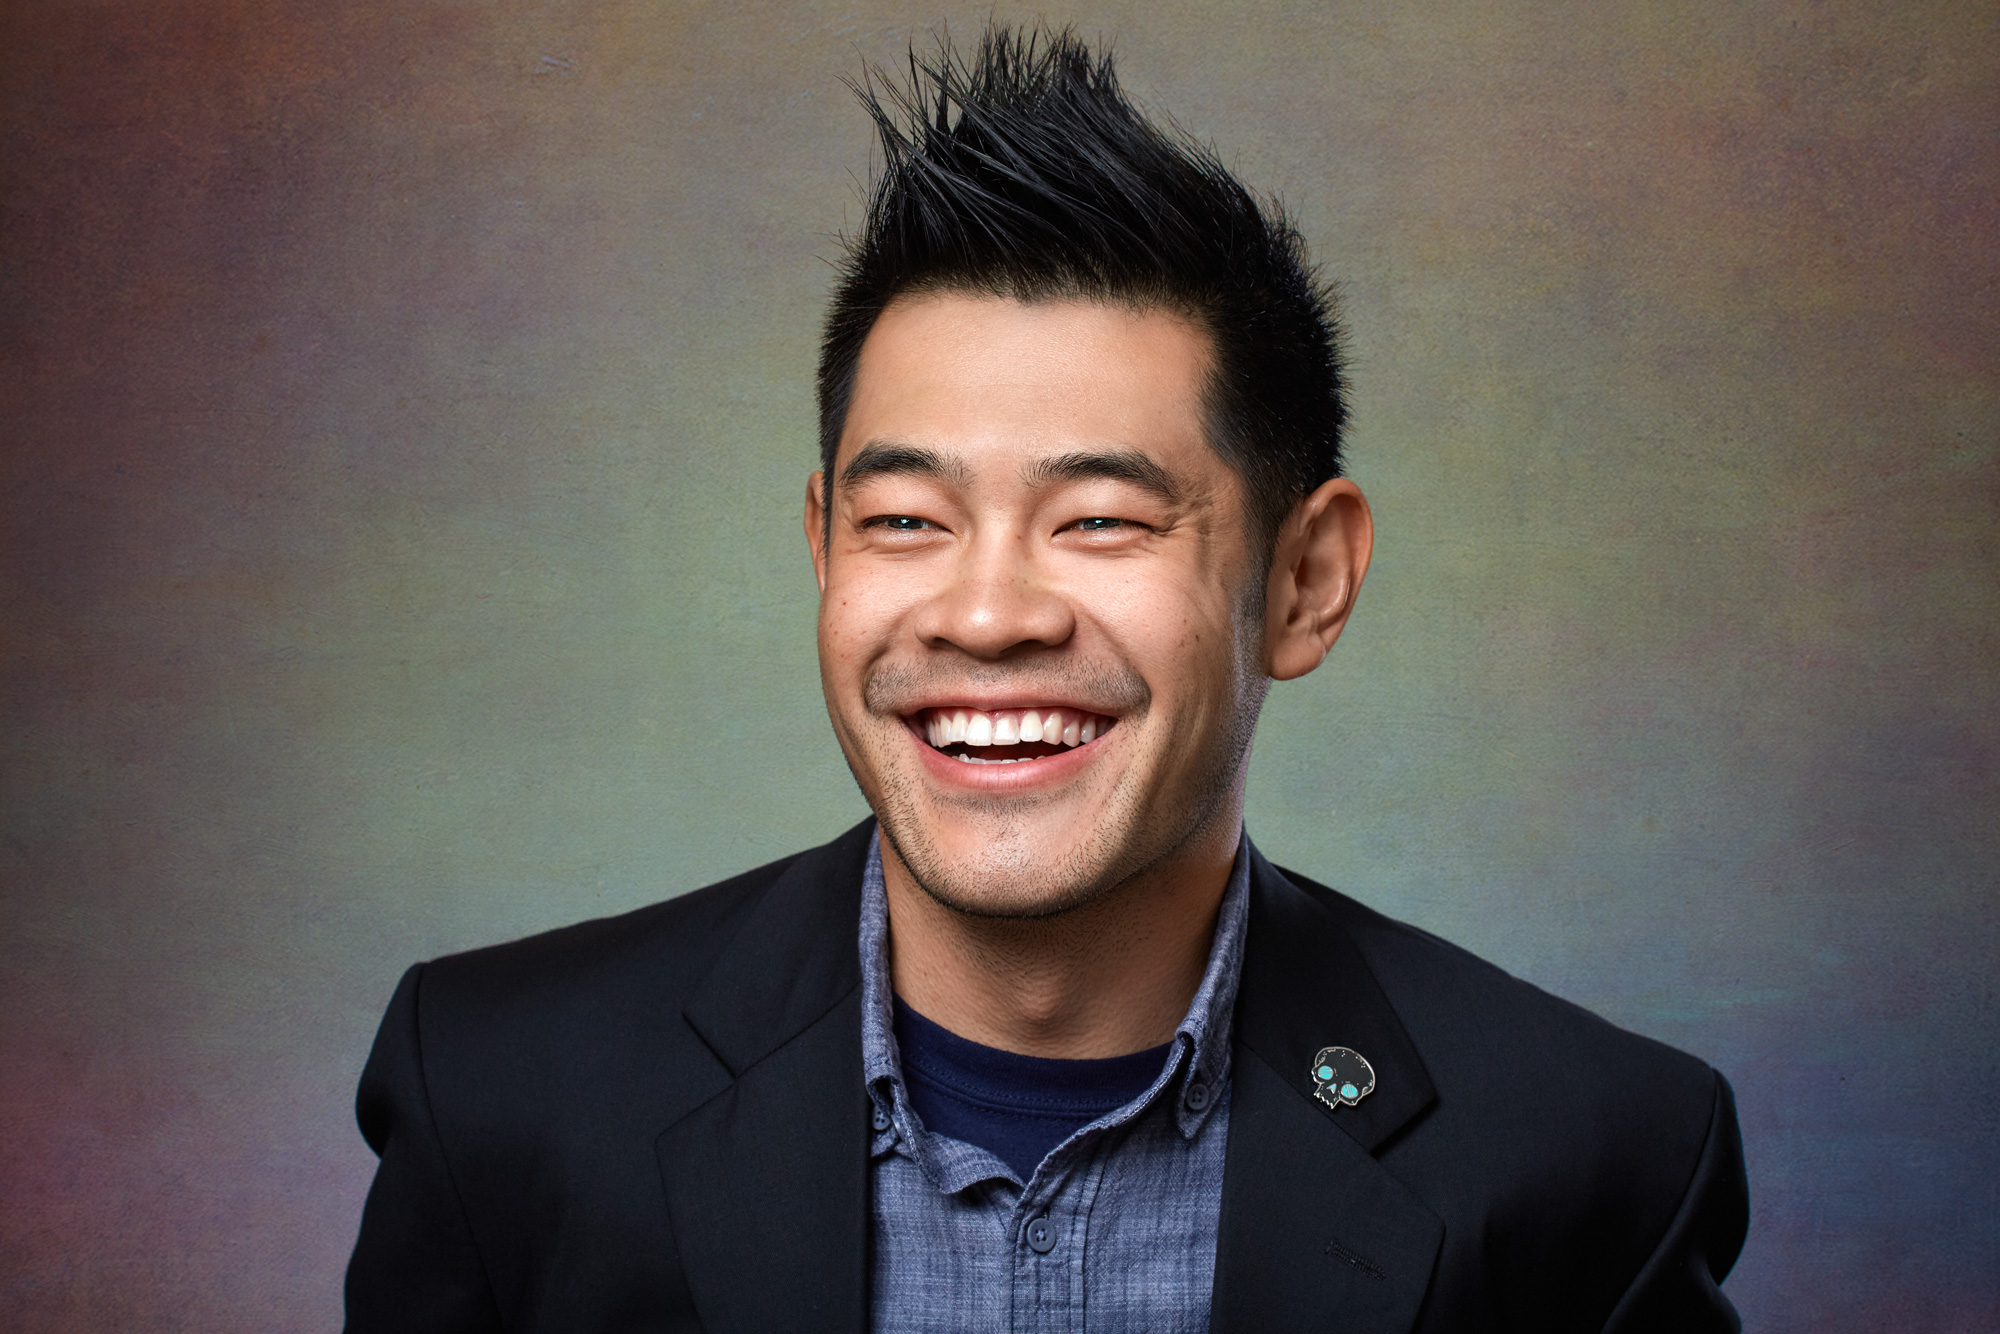 Professional Asian Man with Spiked Hair Laughing